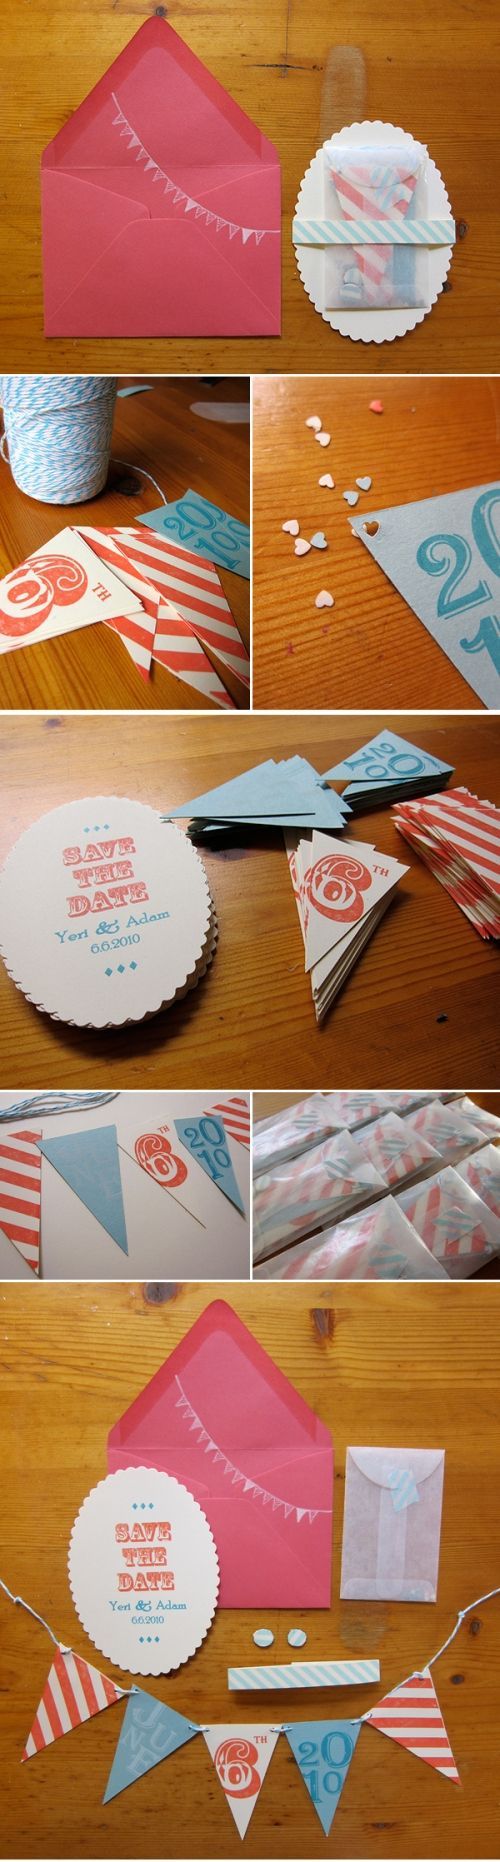 DIY make your own flags invitations